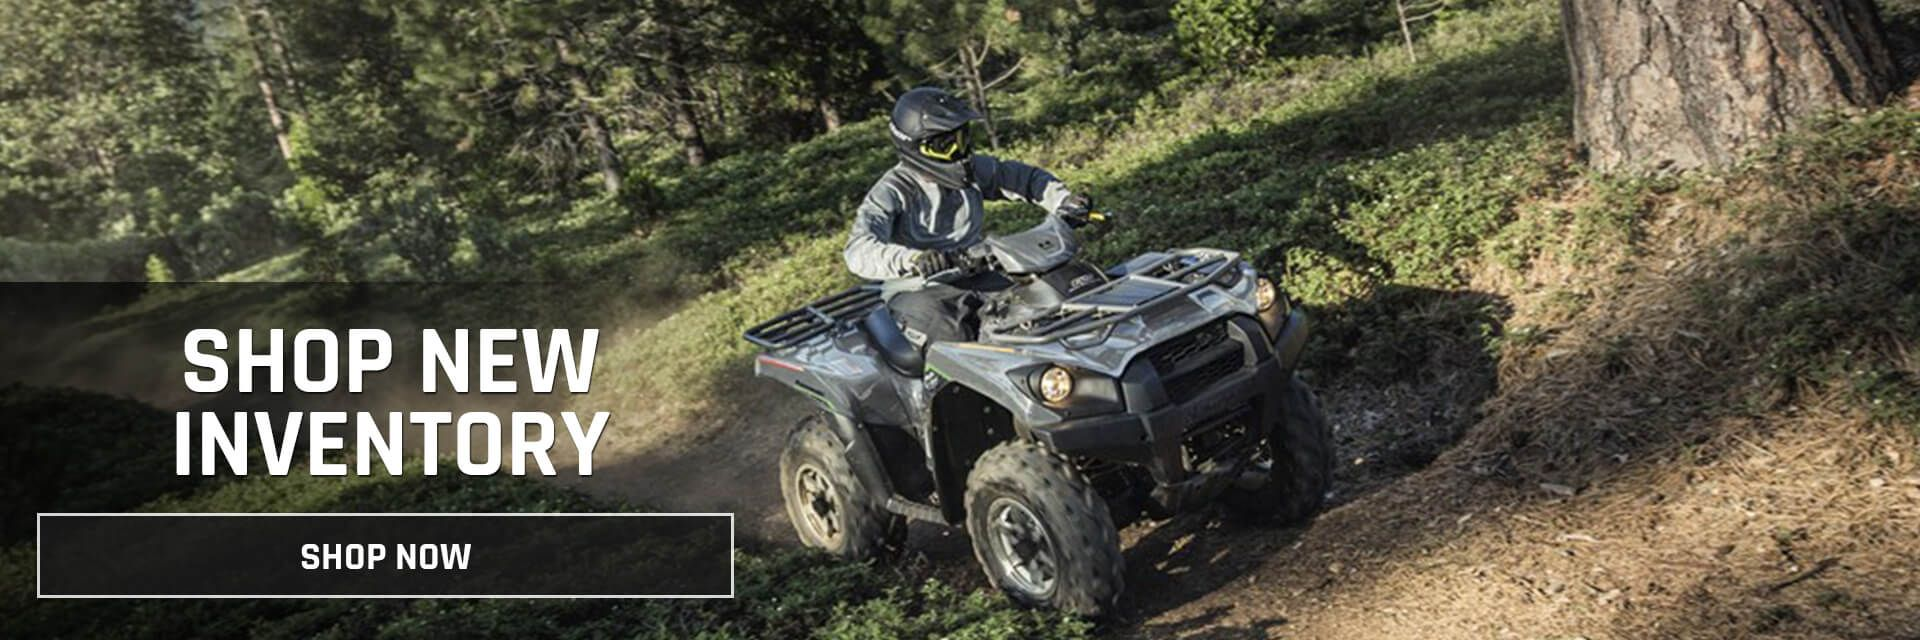 JEM Motorsports Kawasaki | Motorcycles & ATVs for Sale in Maine